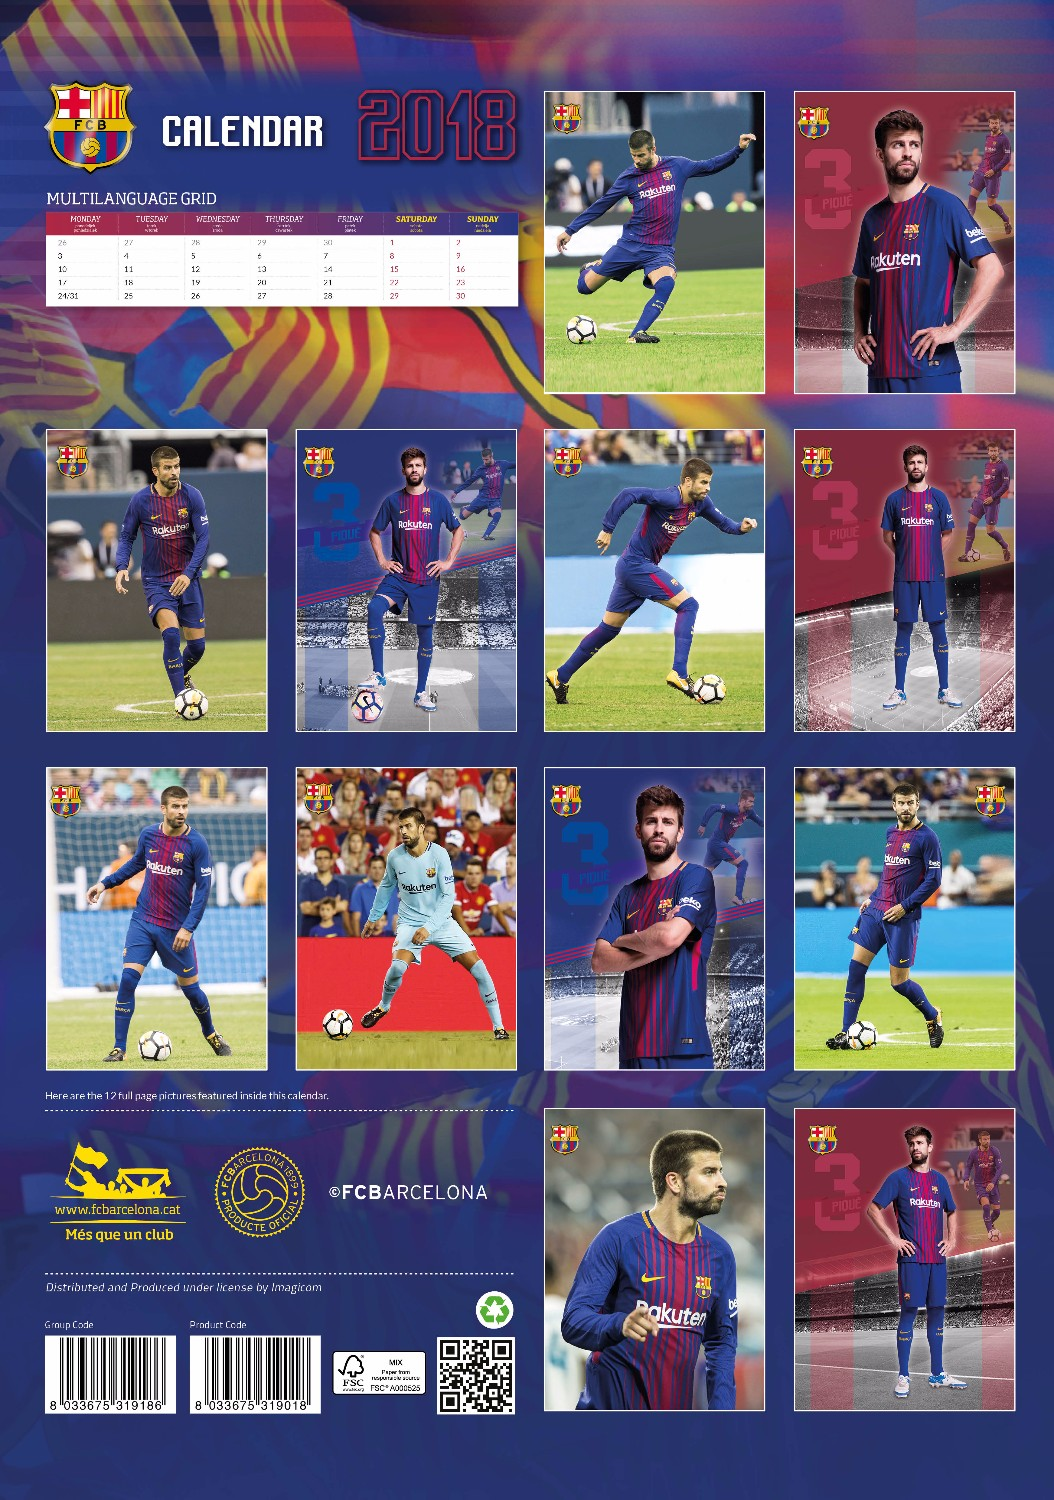 Pique' Celebrity Wall Calendar 2018 back 8033675319018